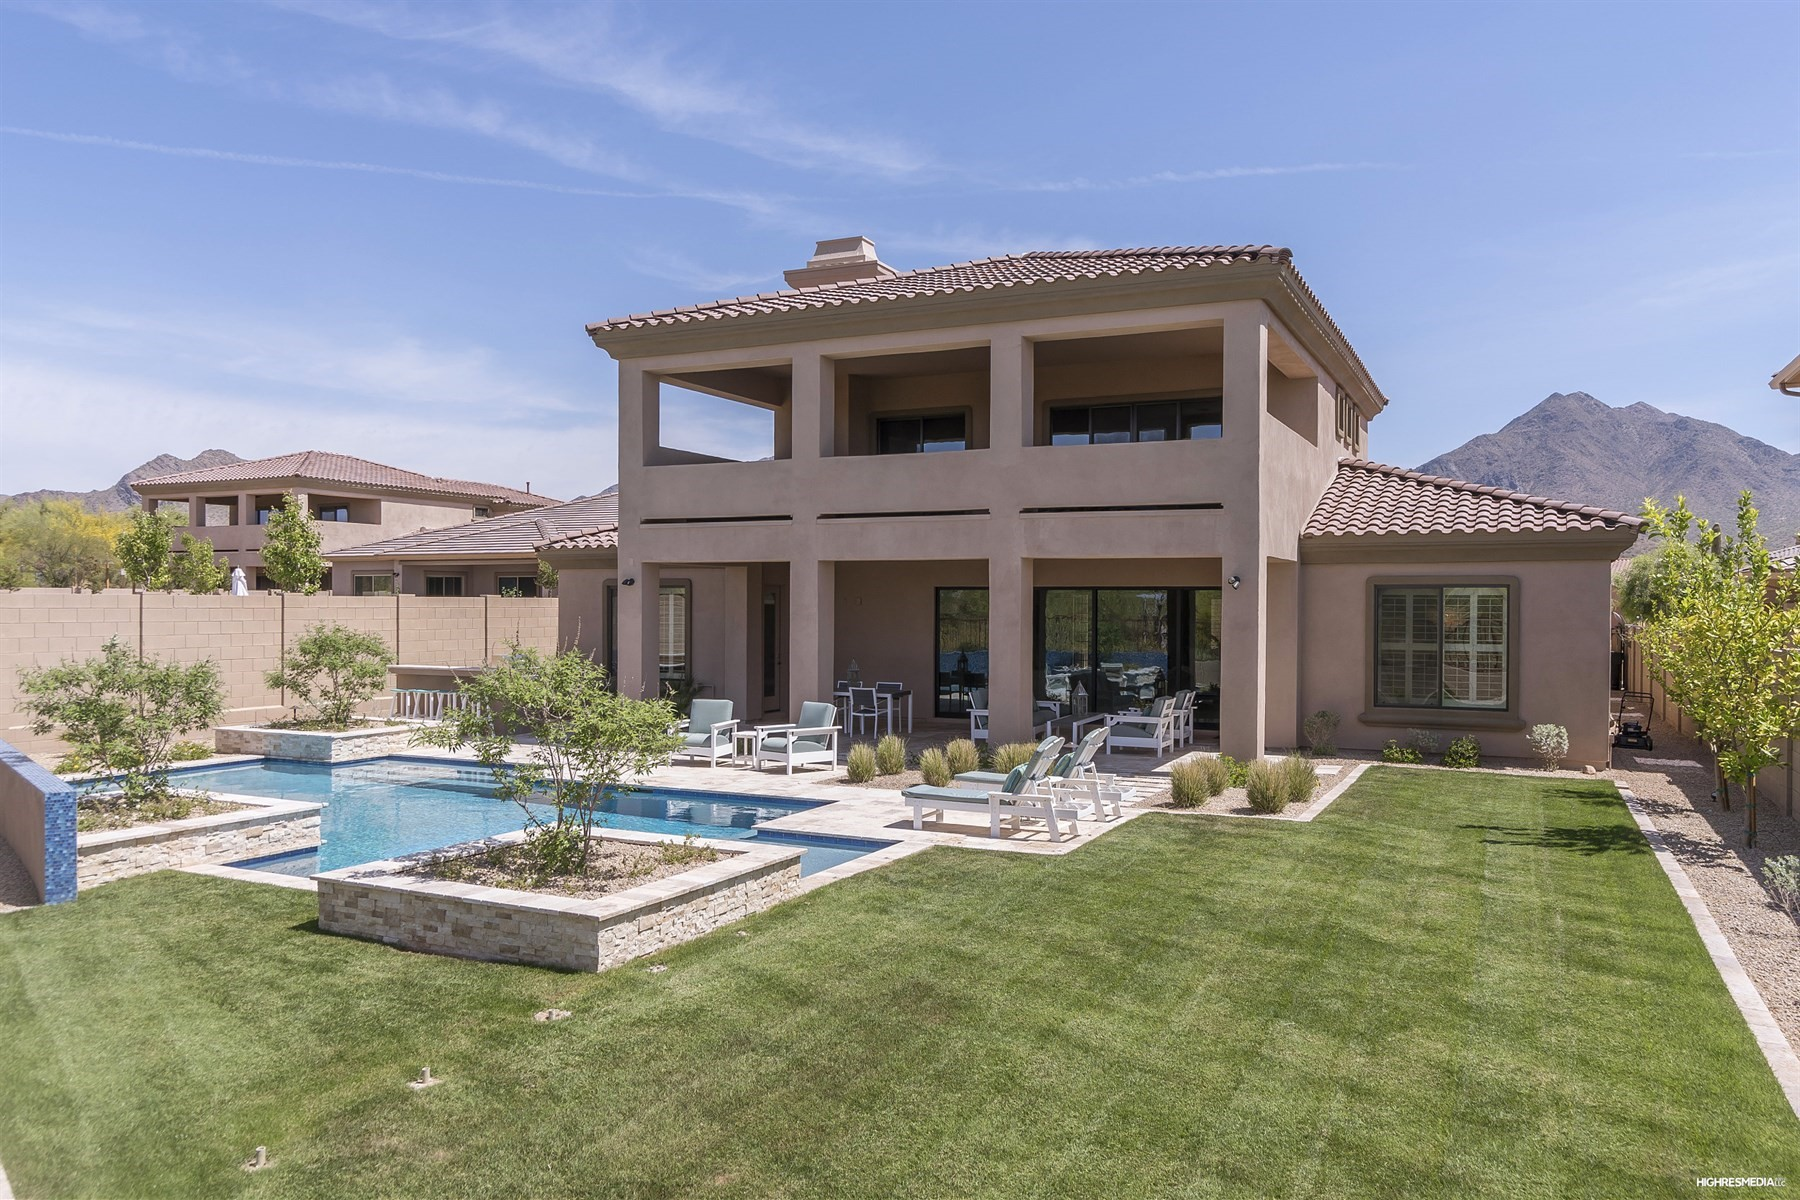 Single Family Home for Sale at Gorgeous two story home with glorious views 18510 N 96th Way Scottsdale, Arizona, 85255 United States